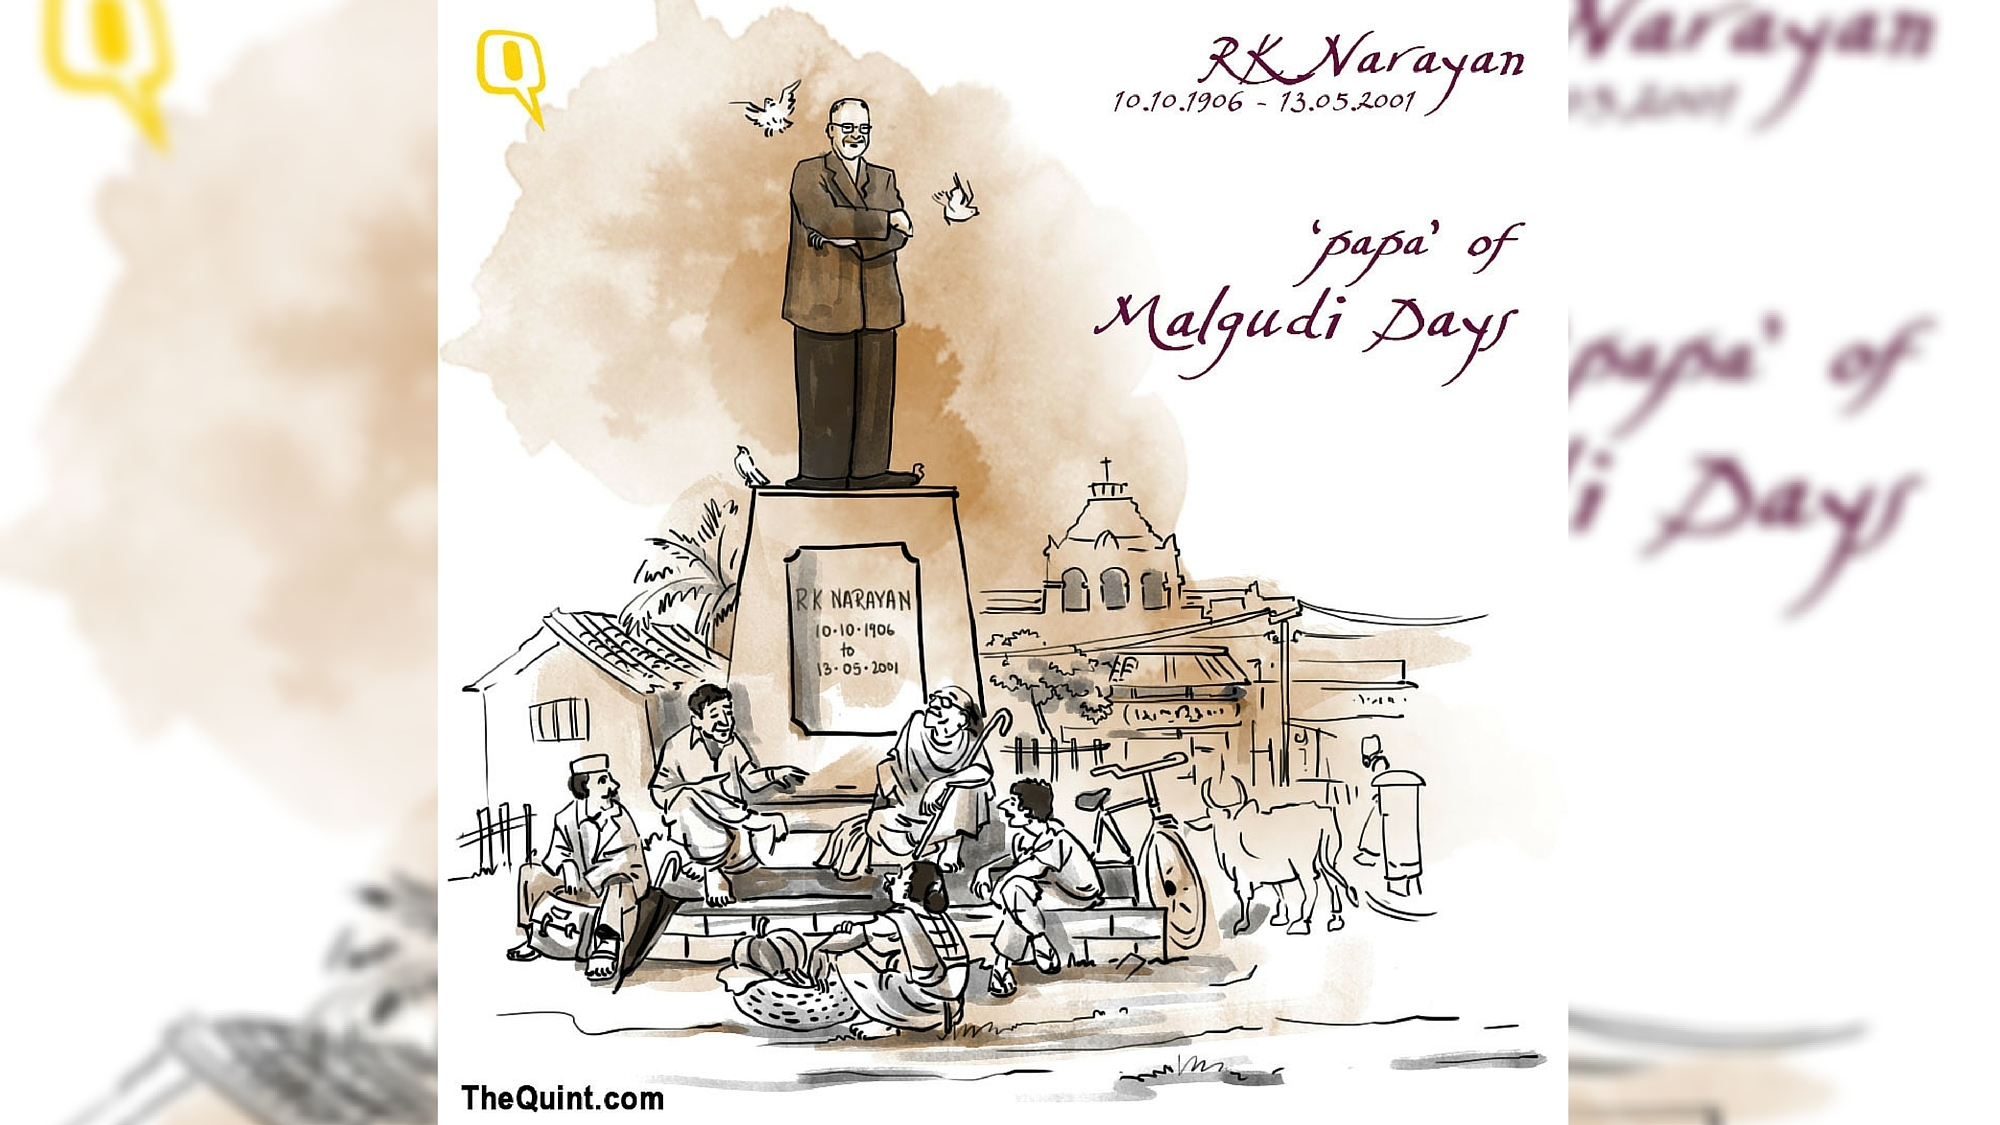 Remembering RK Narayan on His Death Anniversary